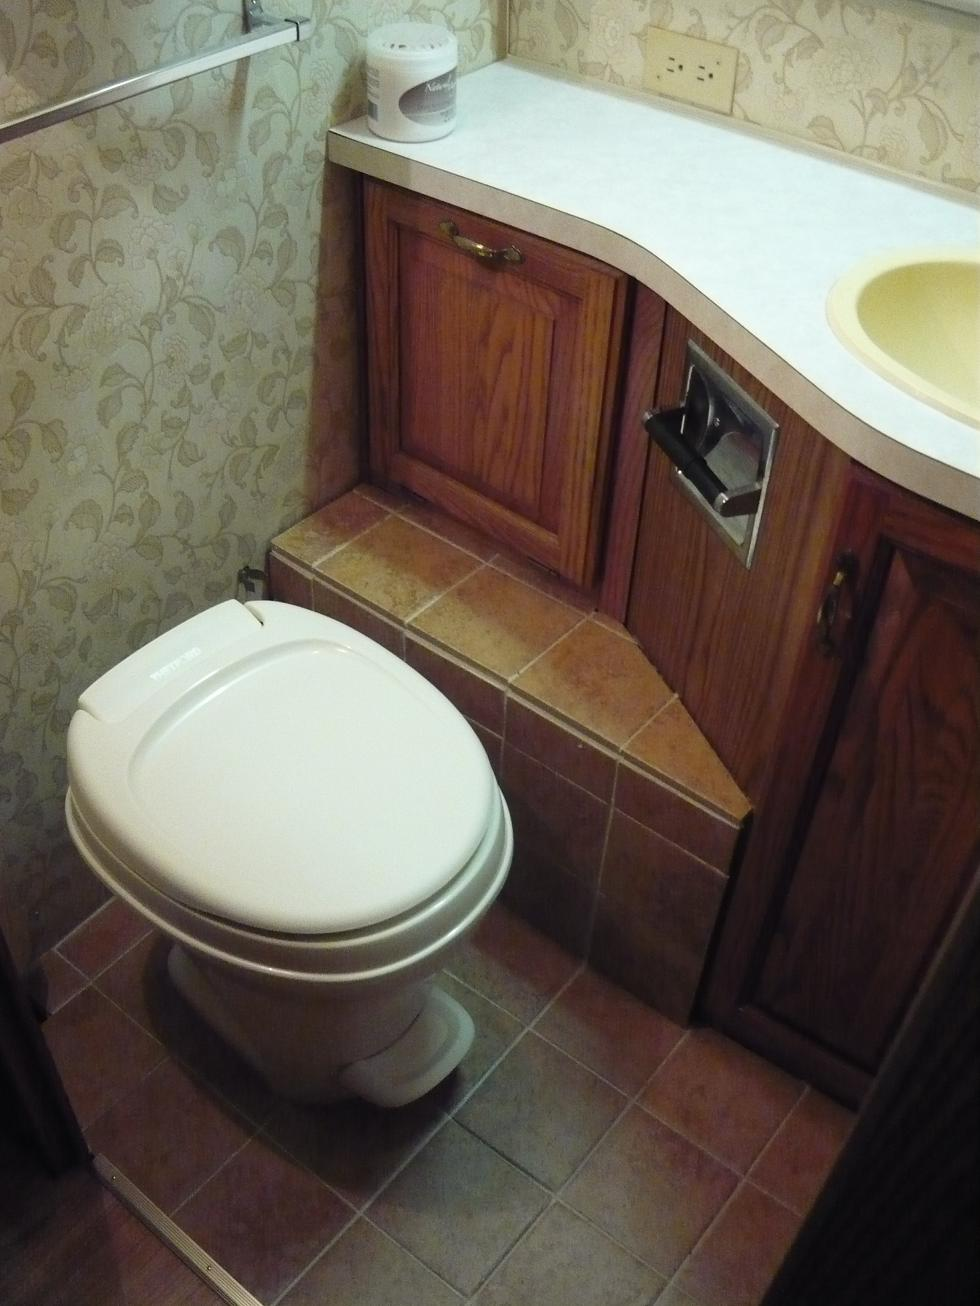 Click image for larger version  Name:Bathroom.jpg Views:128 Size:134.3 KB ID:87189